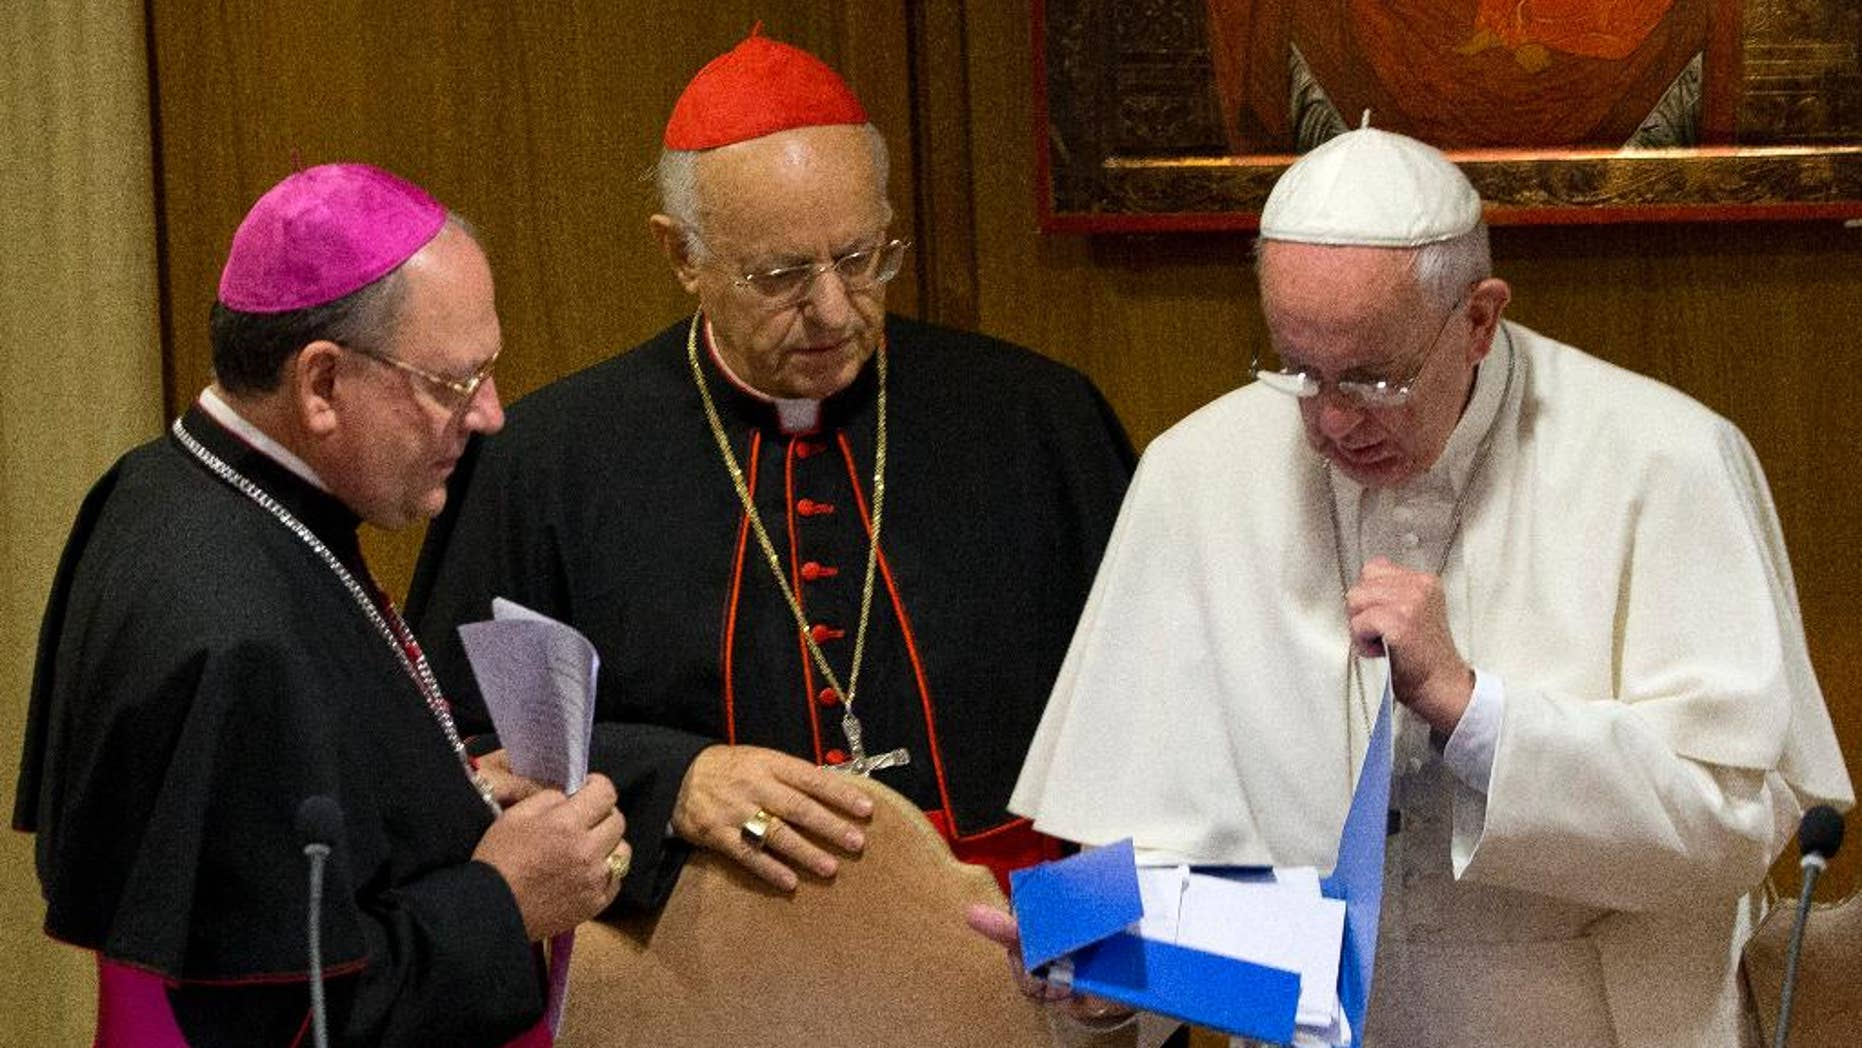 Pope Francis, right, checks a folder next to Bishop Fabio Fabene, left, and Cardinal Lorenzo Baldisseri as they arrive at a morning session of the two week-long Synod of bishops, at the Vatican, Tuesday, Oct. 6, 2015. (AP Photo/Alessandra Tarantino)